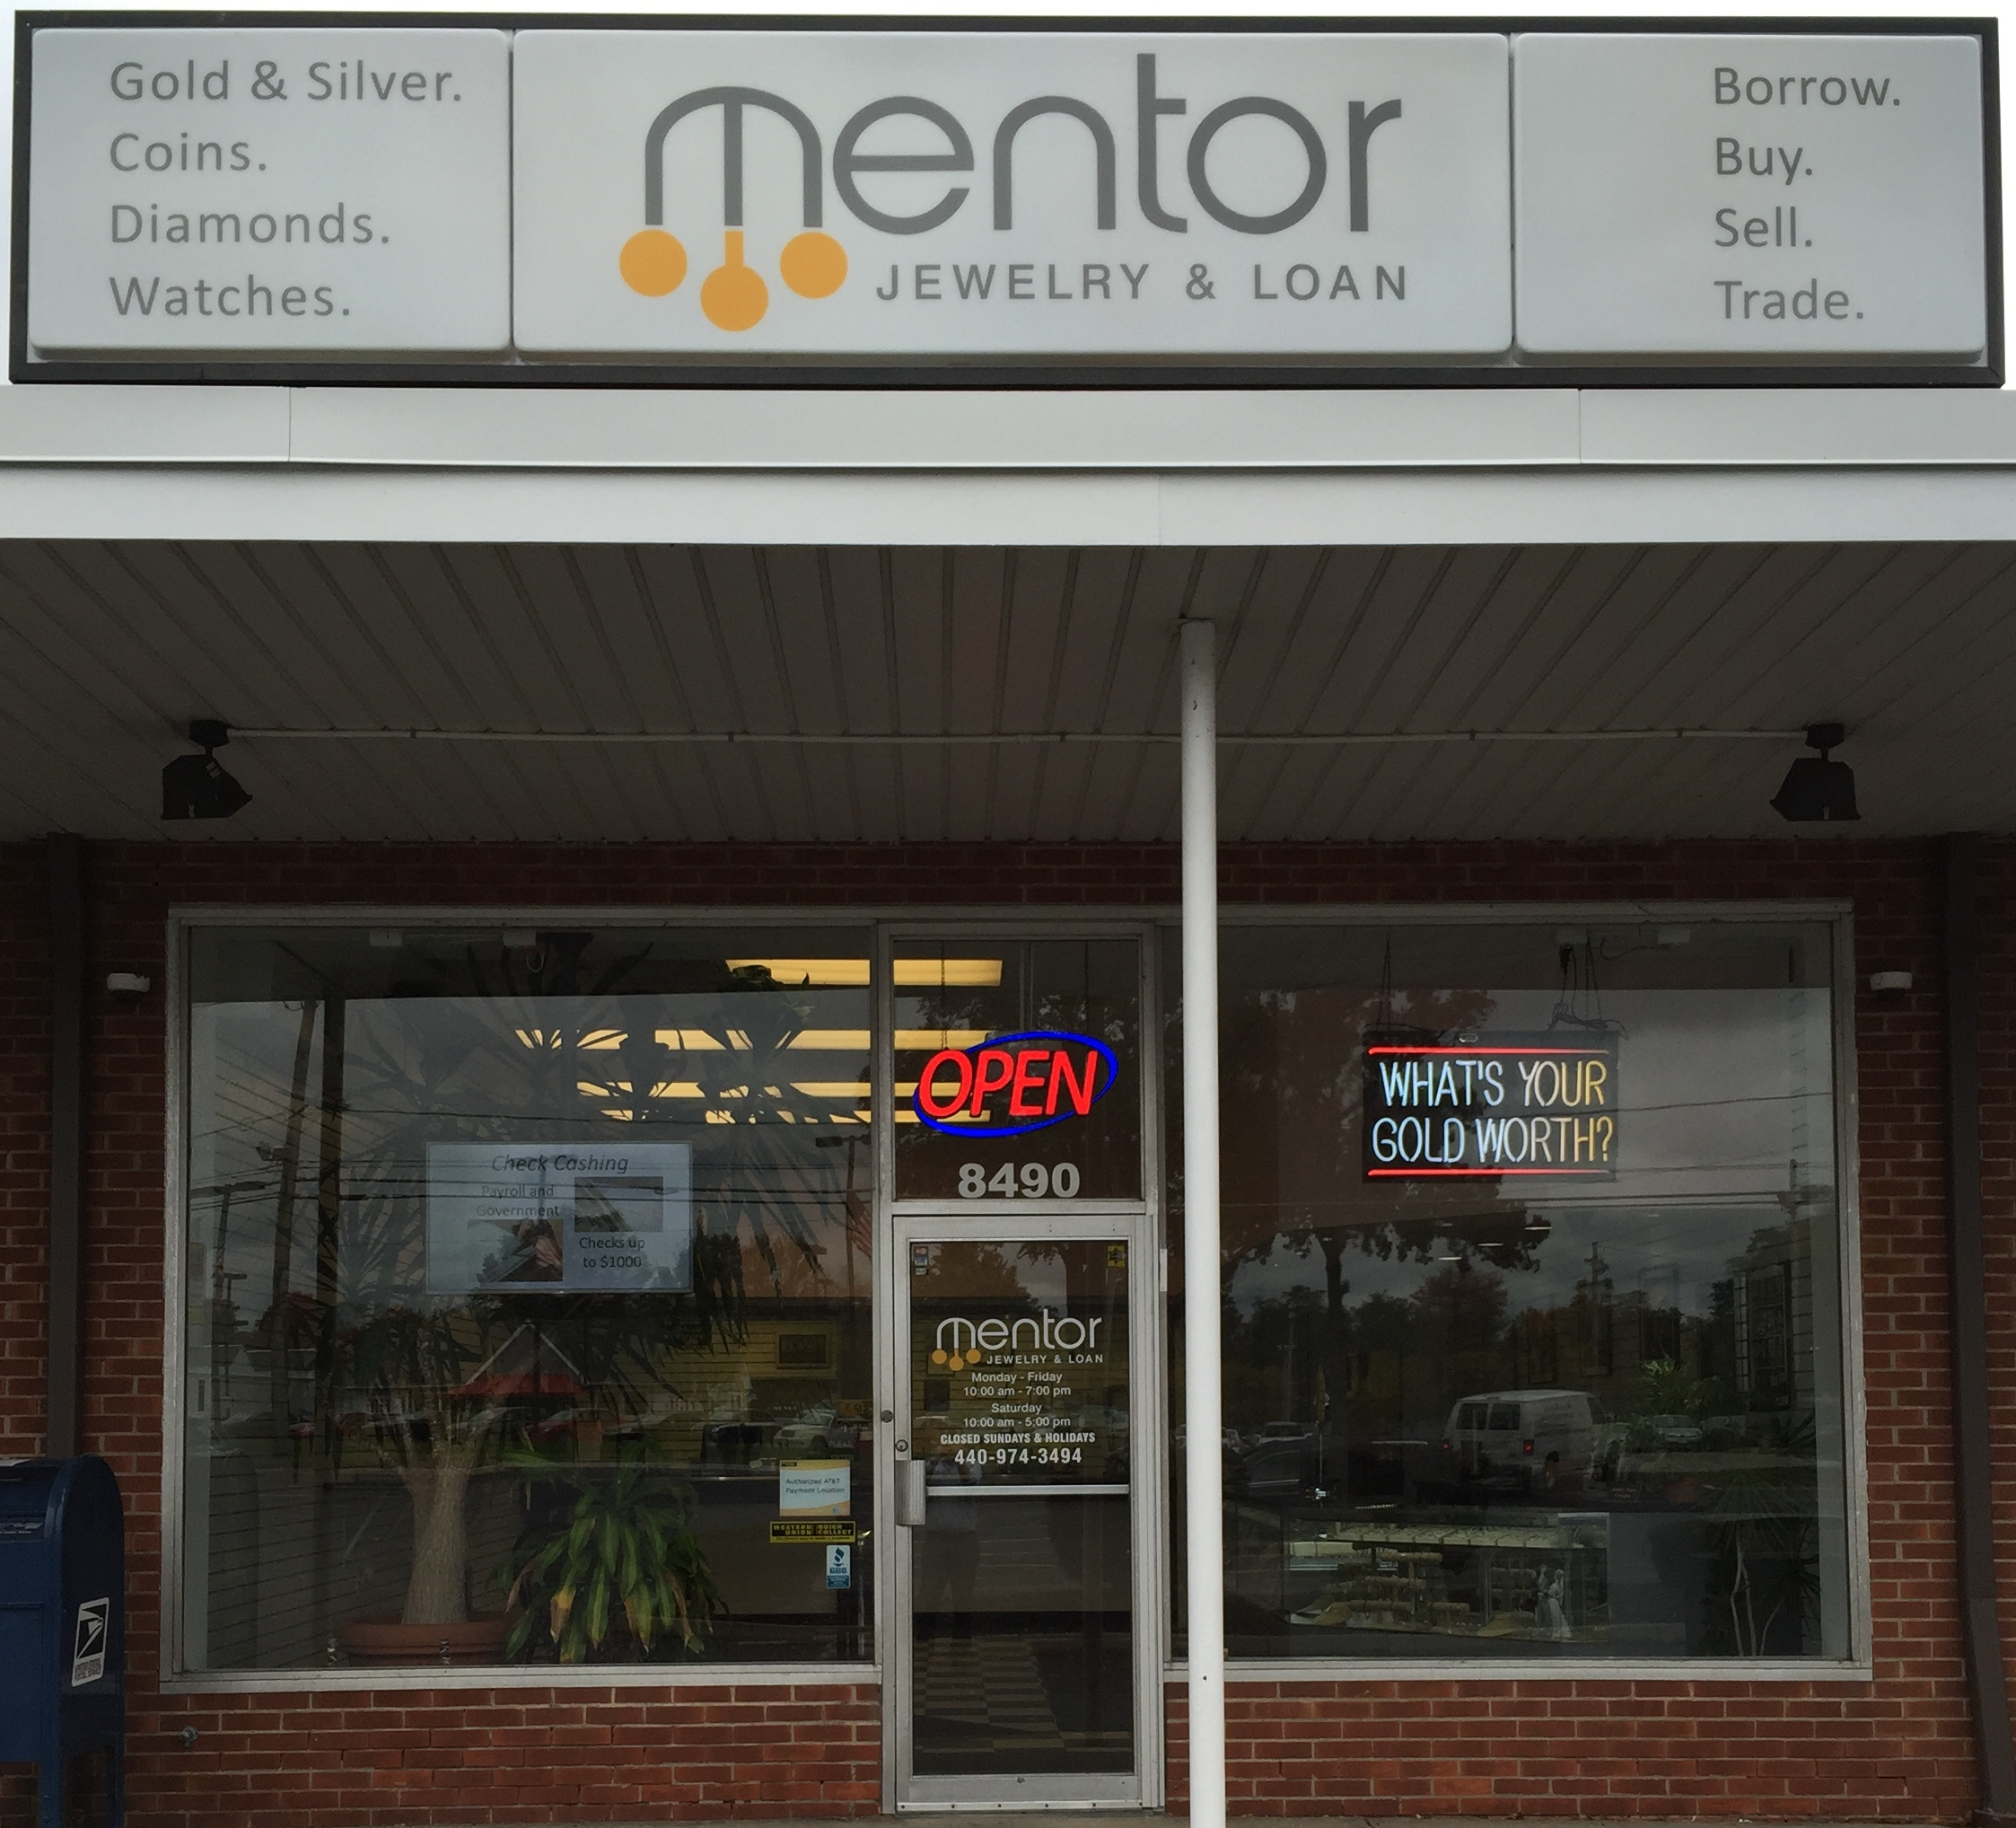 Mentor Jewelry Amp Loan 8490 Mentor Ave Mentor Oh 44060